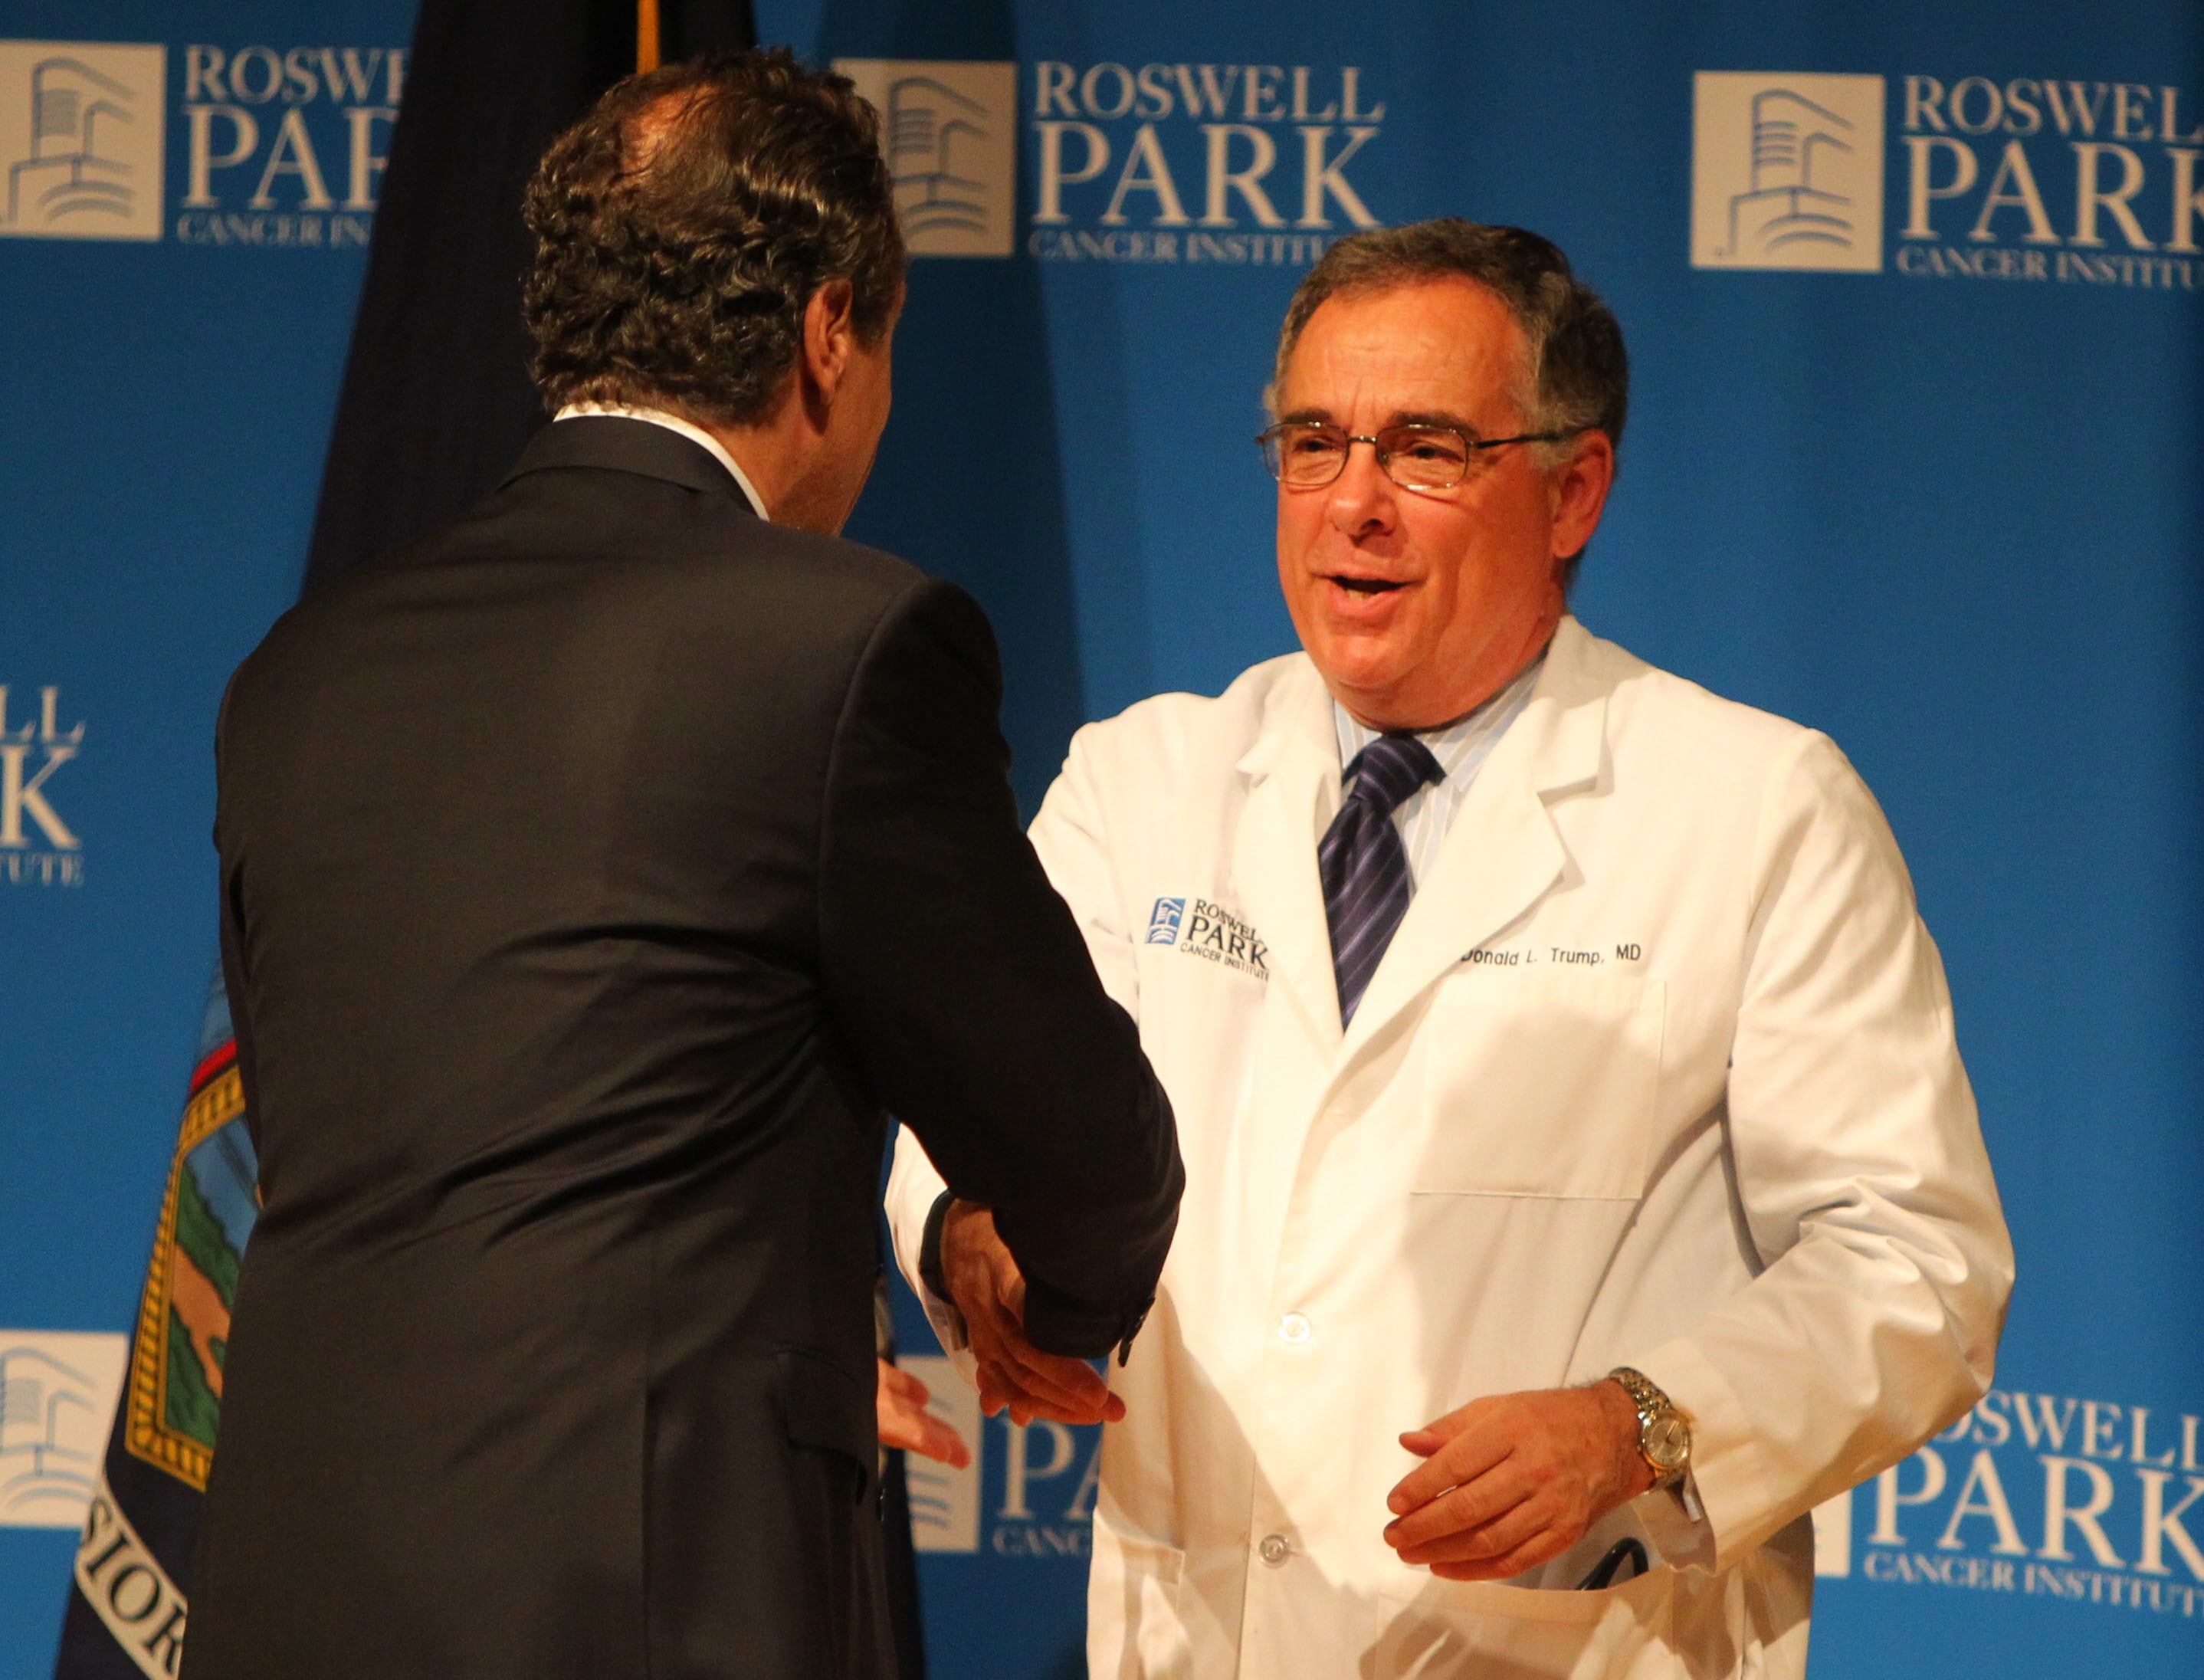 Roswell Park's President and CEO Dr. Donald Trump was lauded for leading several initiatives.